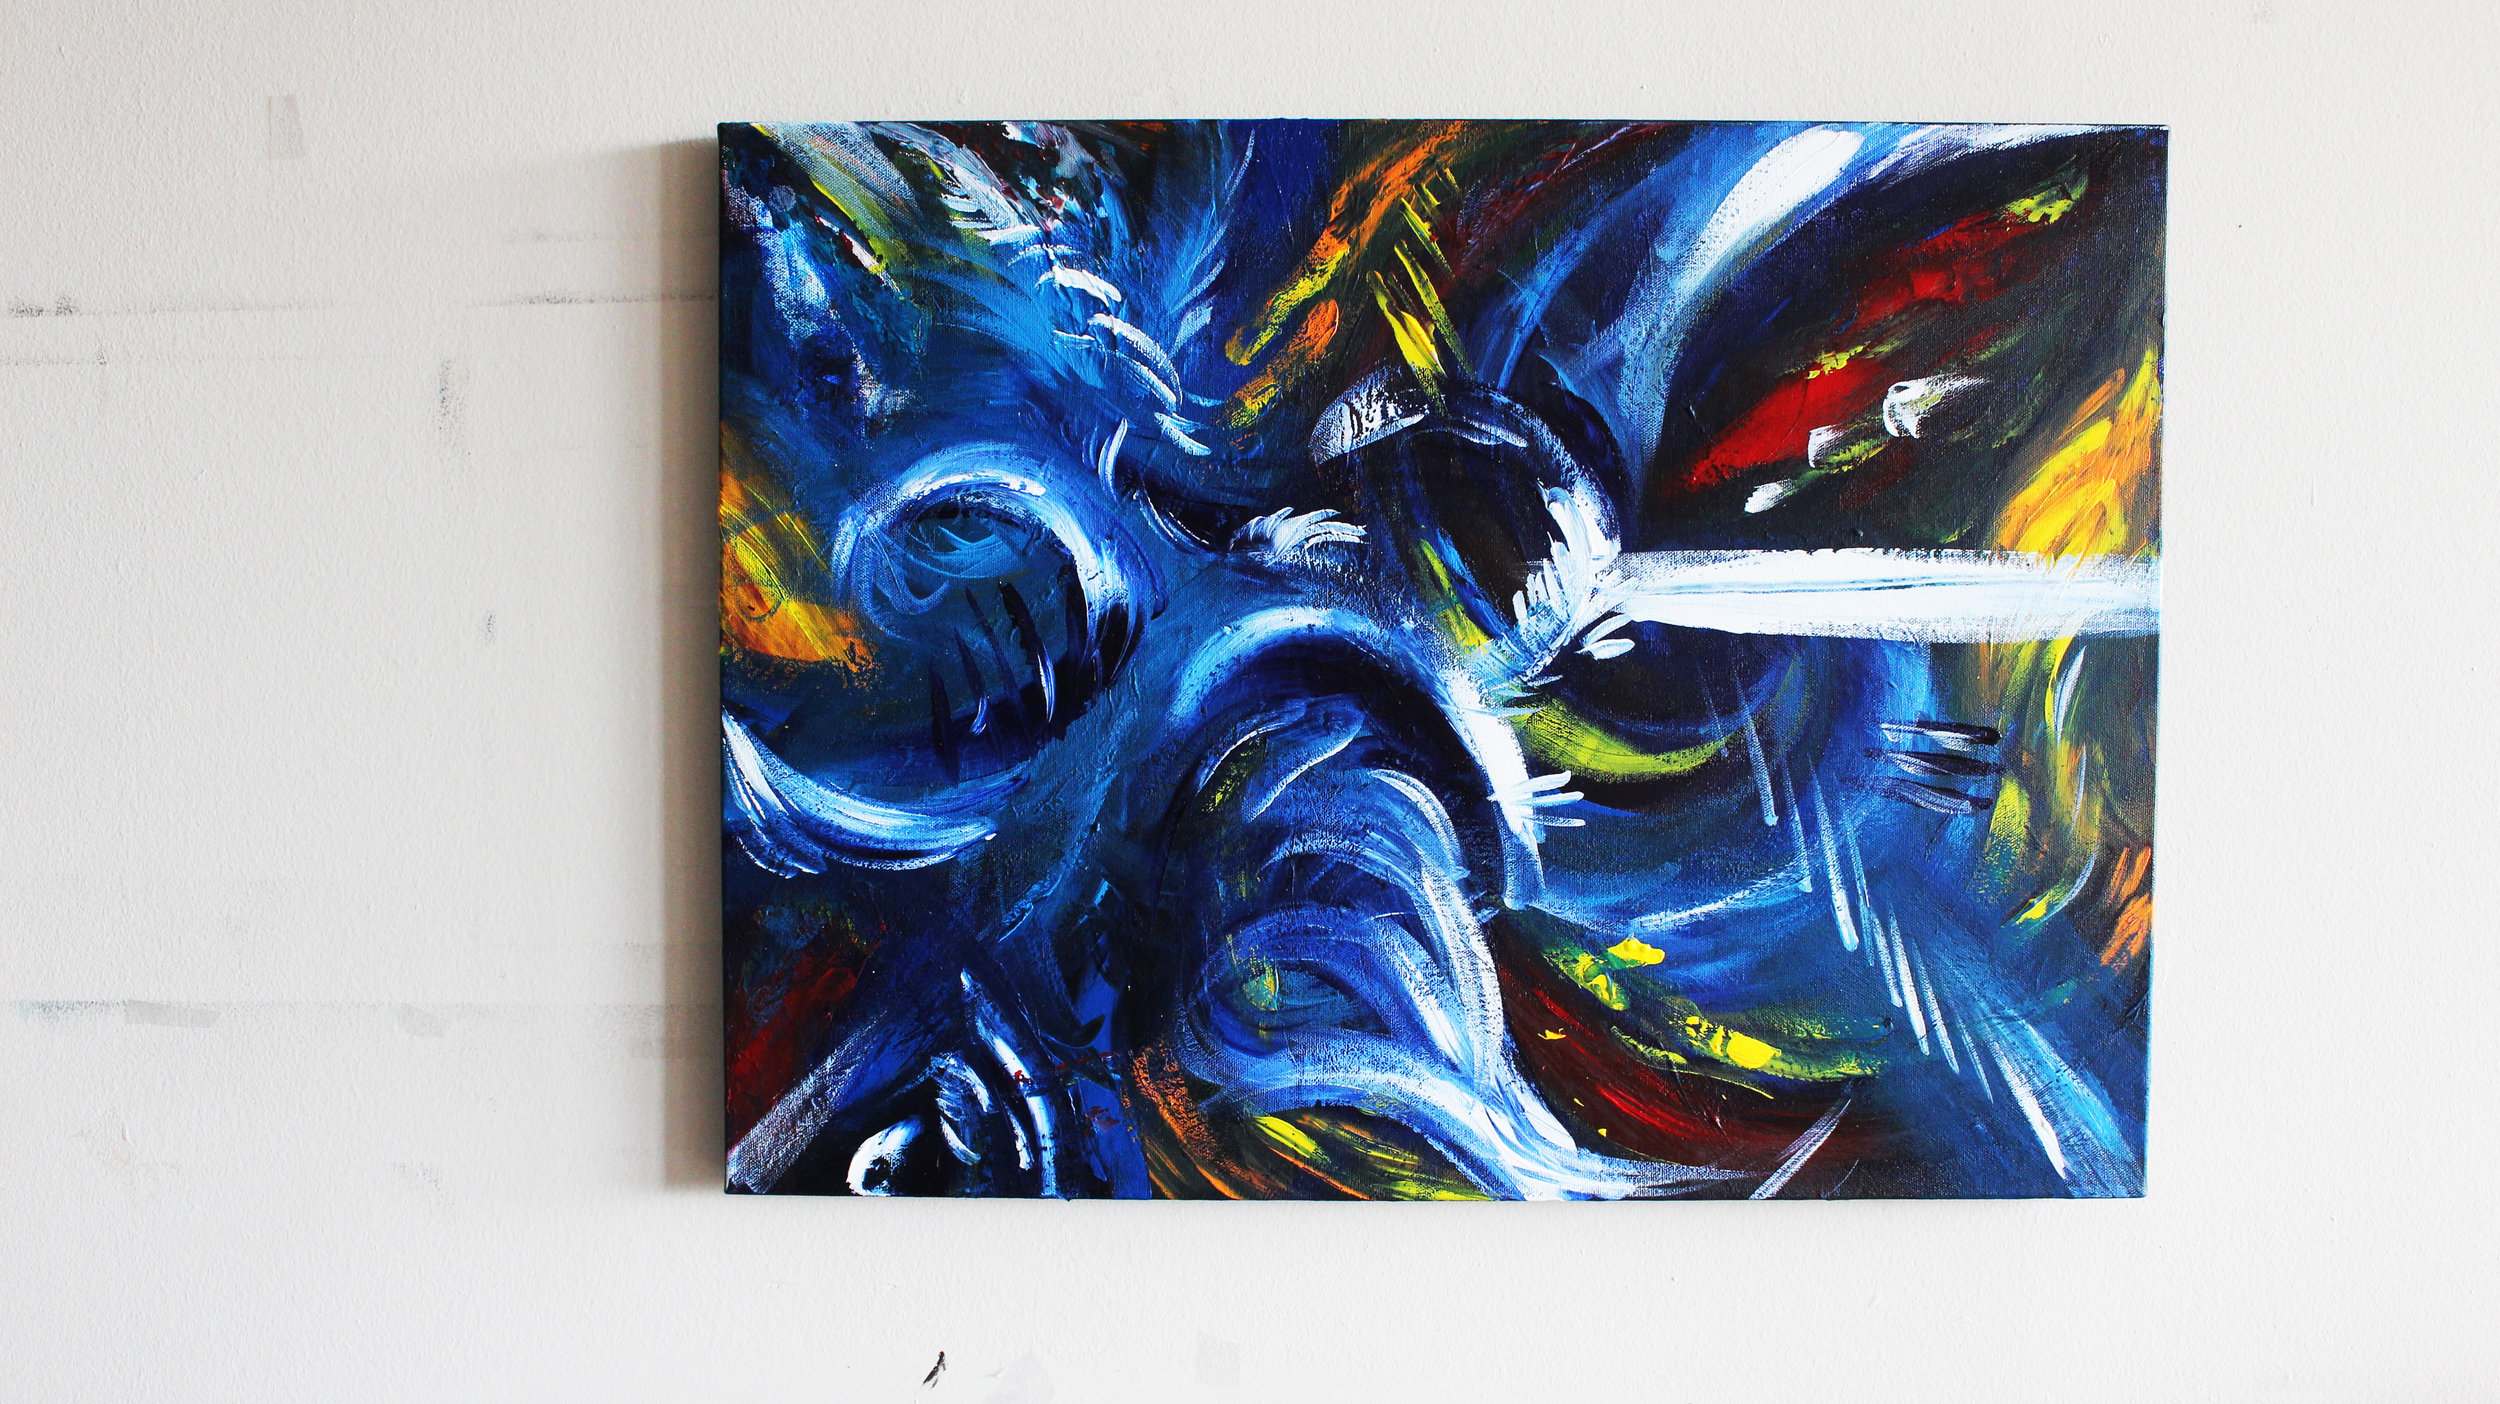 ICE STORM   original acrylic & ink on painting   size : 24 x 18 inches  Canvas : is mounted on a wood stretcher frame